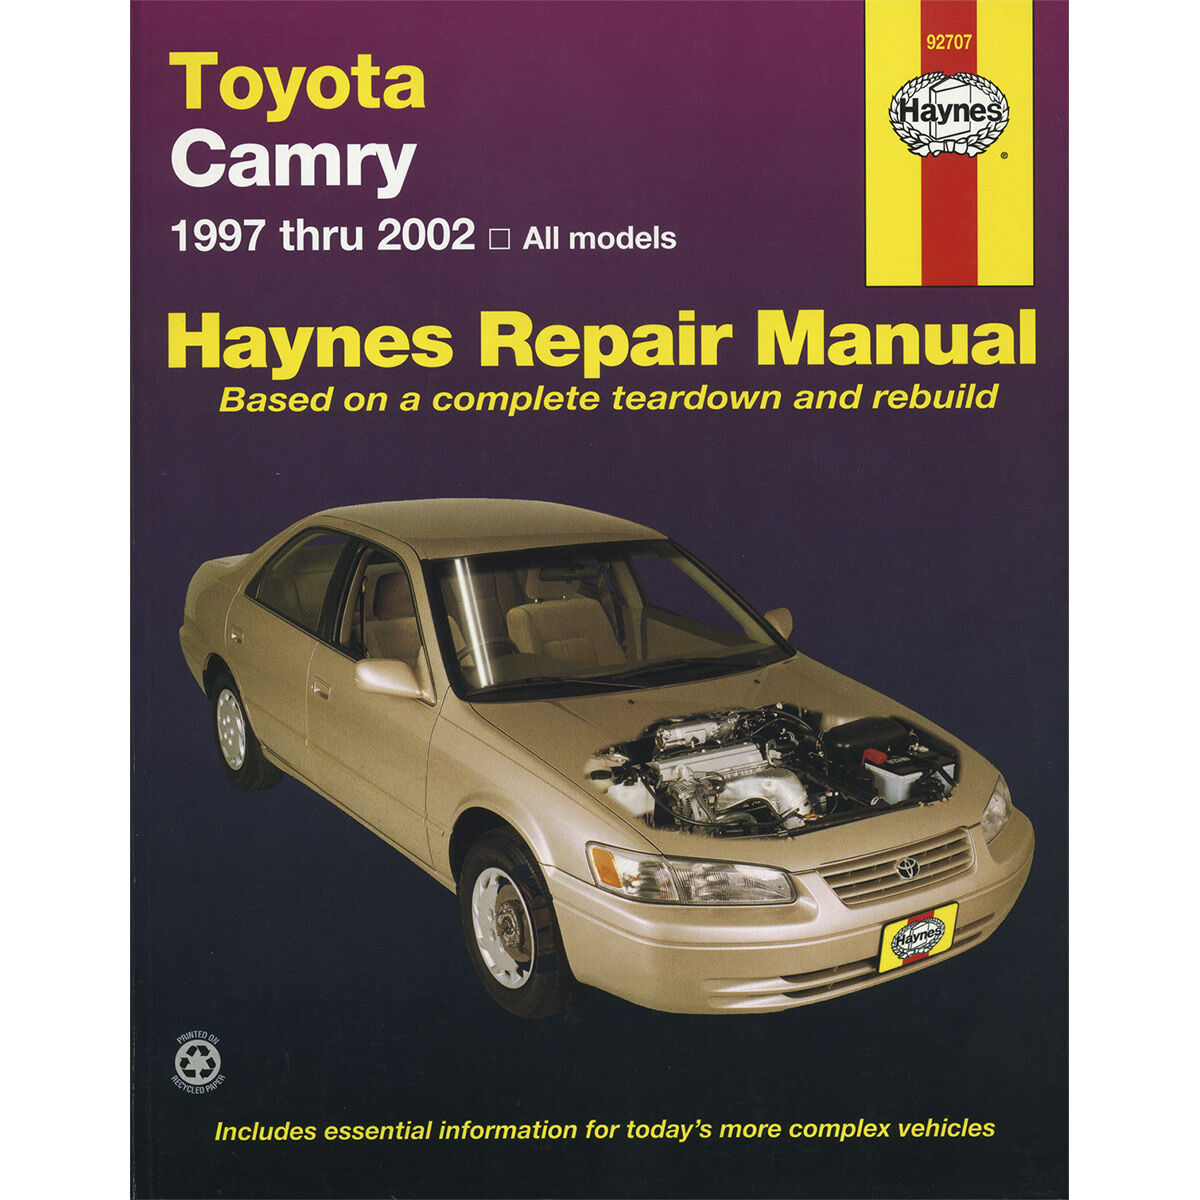 haynes car manual for toyota camry 1997 2002 92707 supercheap rh  supercheapauto co nz toyota camry 1997 service manual pdf ...